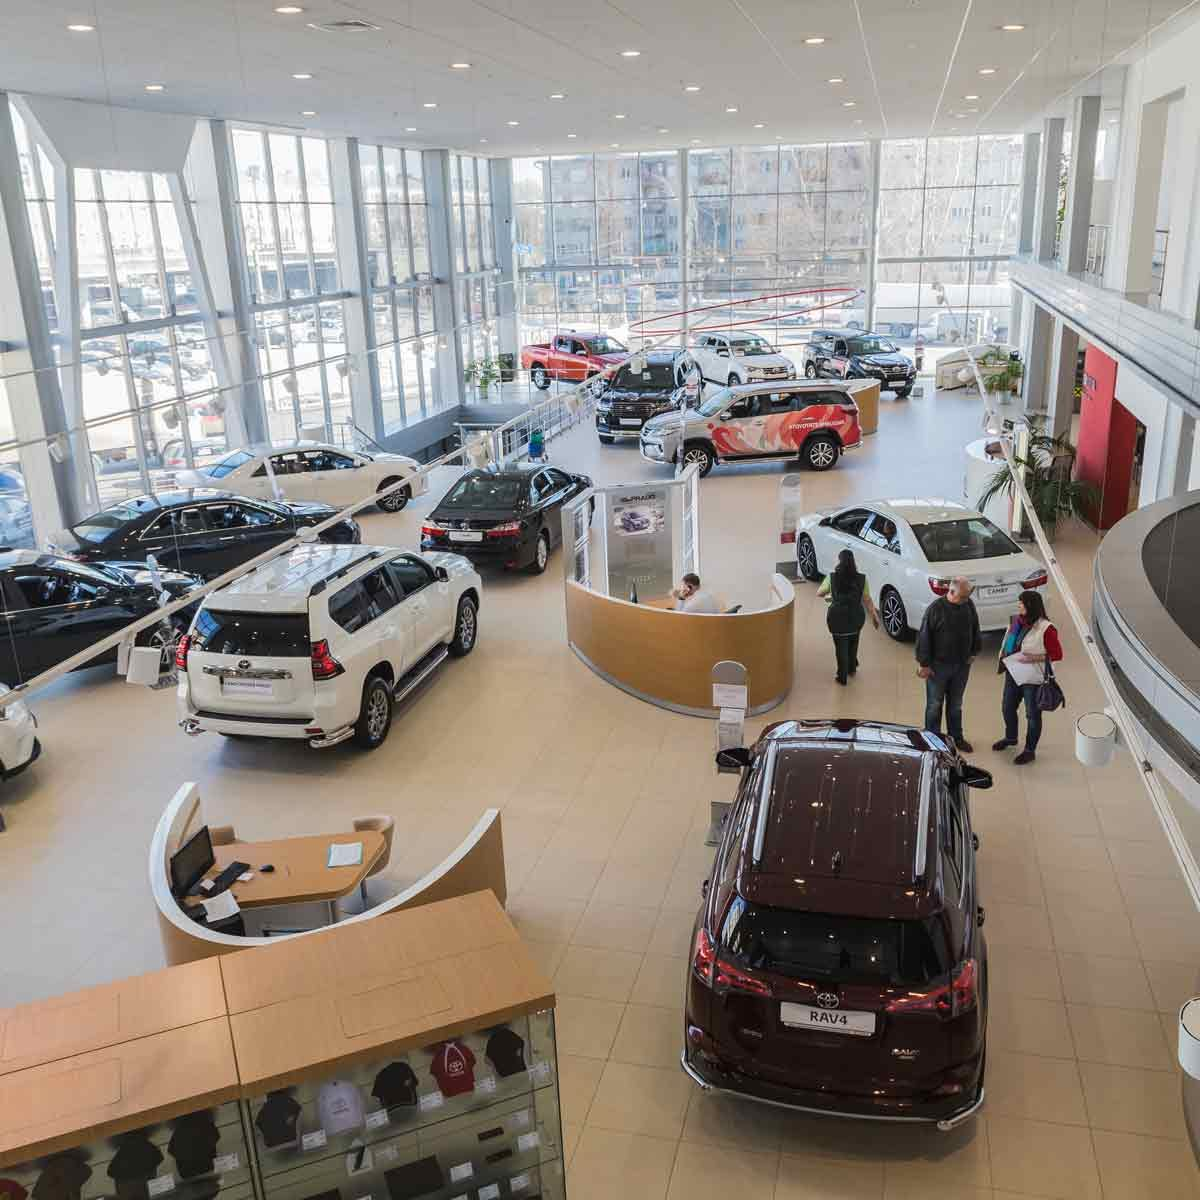 Cars-in-showroom-of-Toyota-dealership